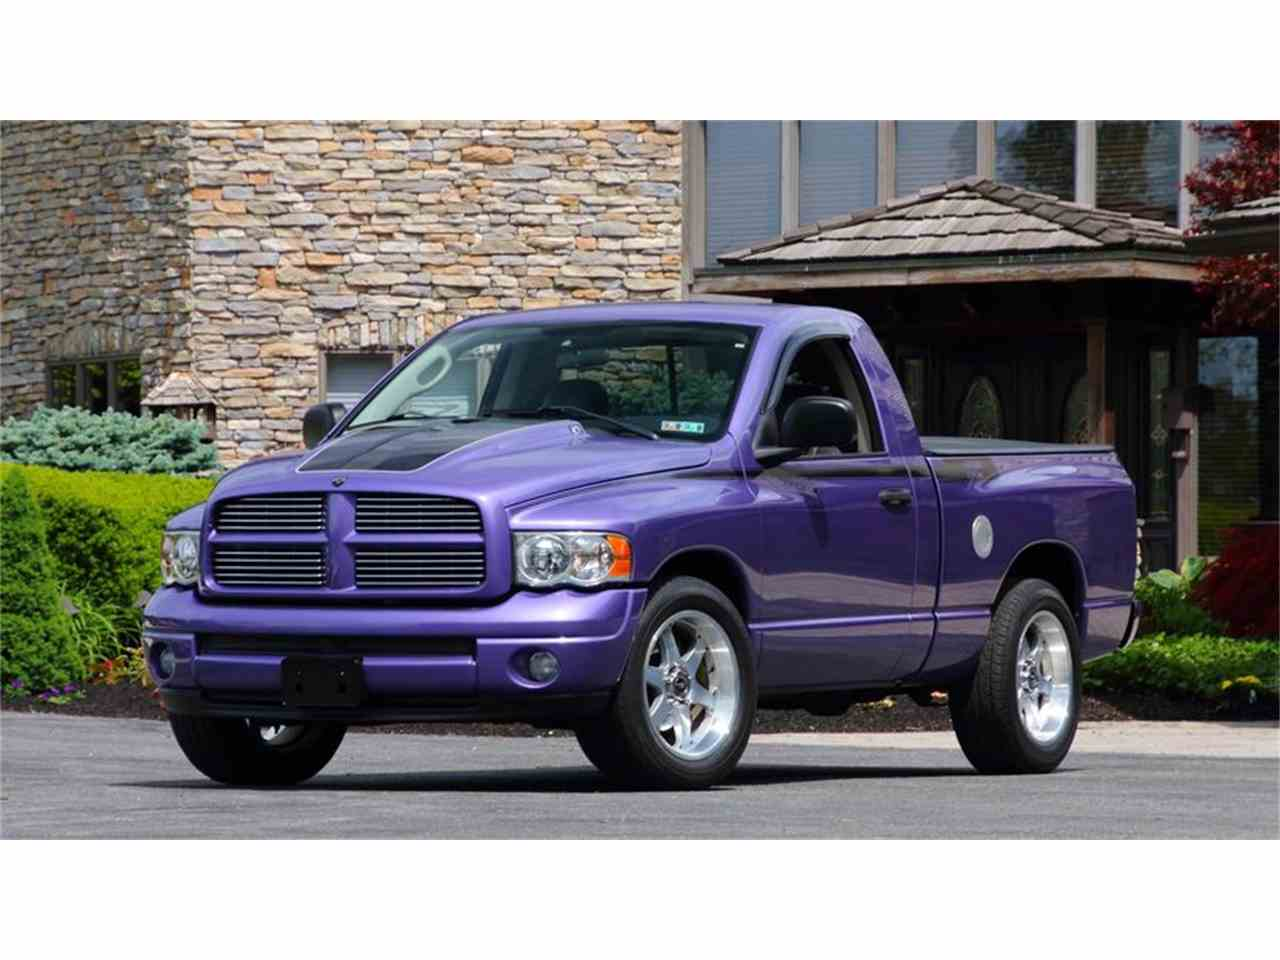 dodge mo online sale copart louis certificate white ram on view auctions in st carfinder en left auto salvage lot s